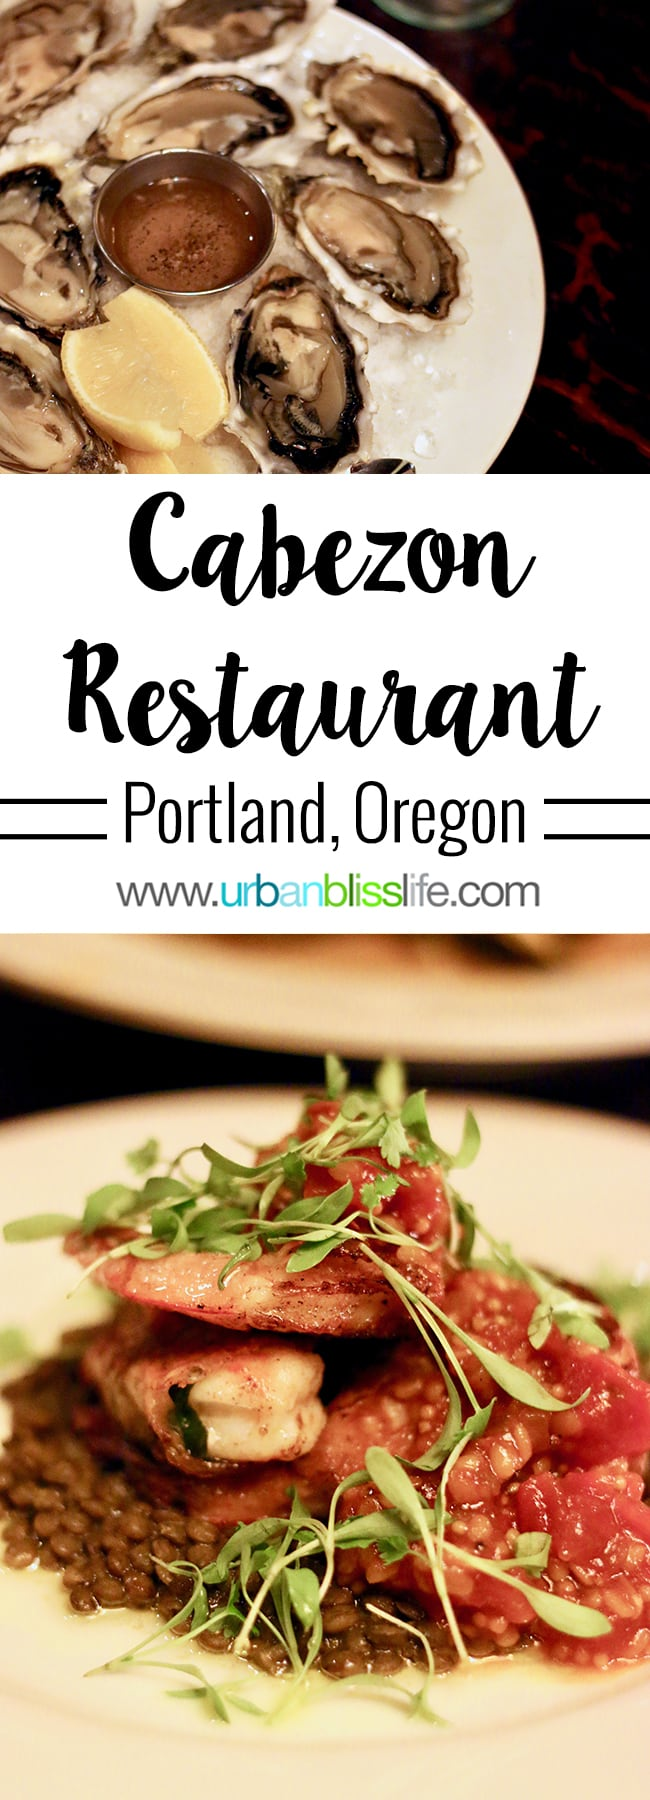 Cabezon restaurant in Portland, Oregon. Full restaurant details on UrbanBlissLife.com